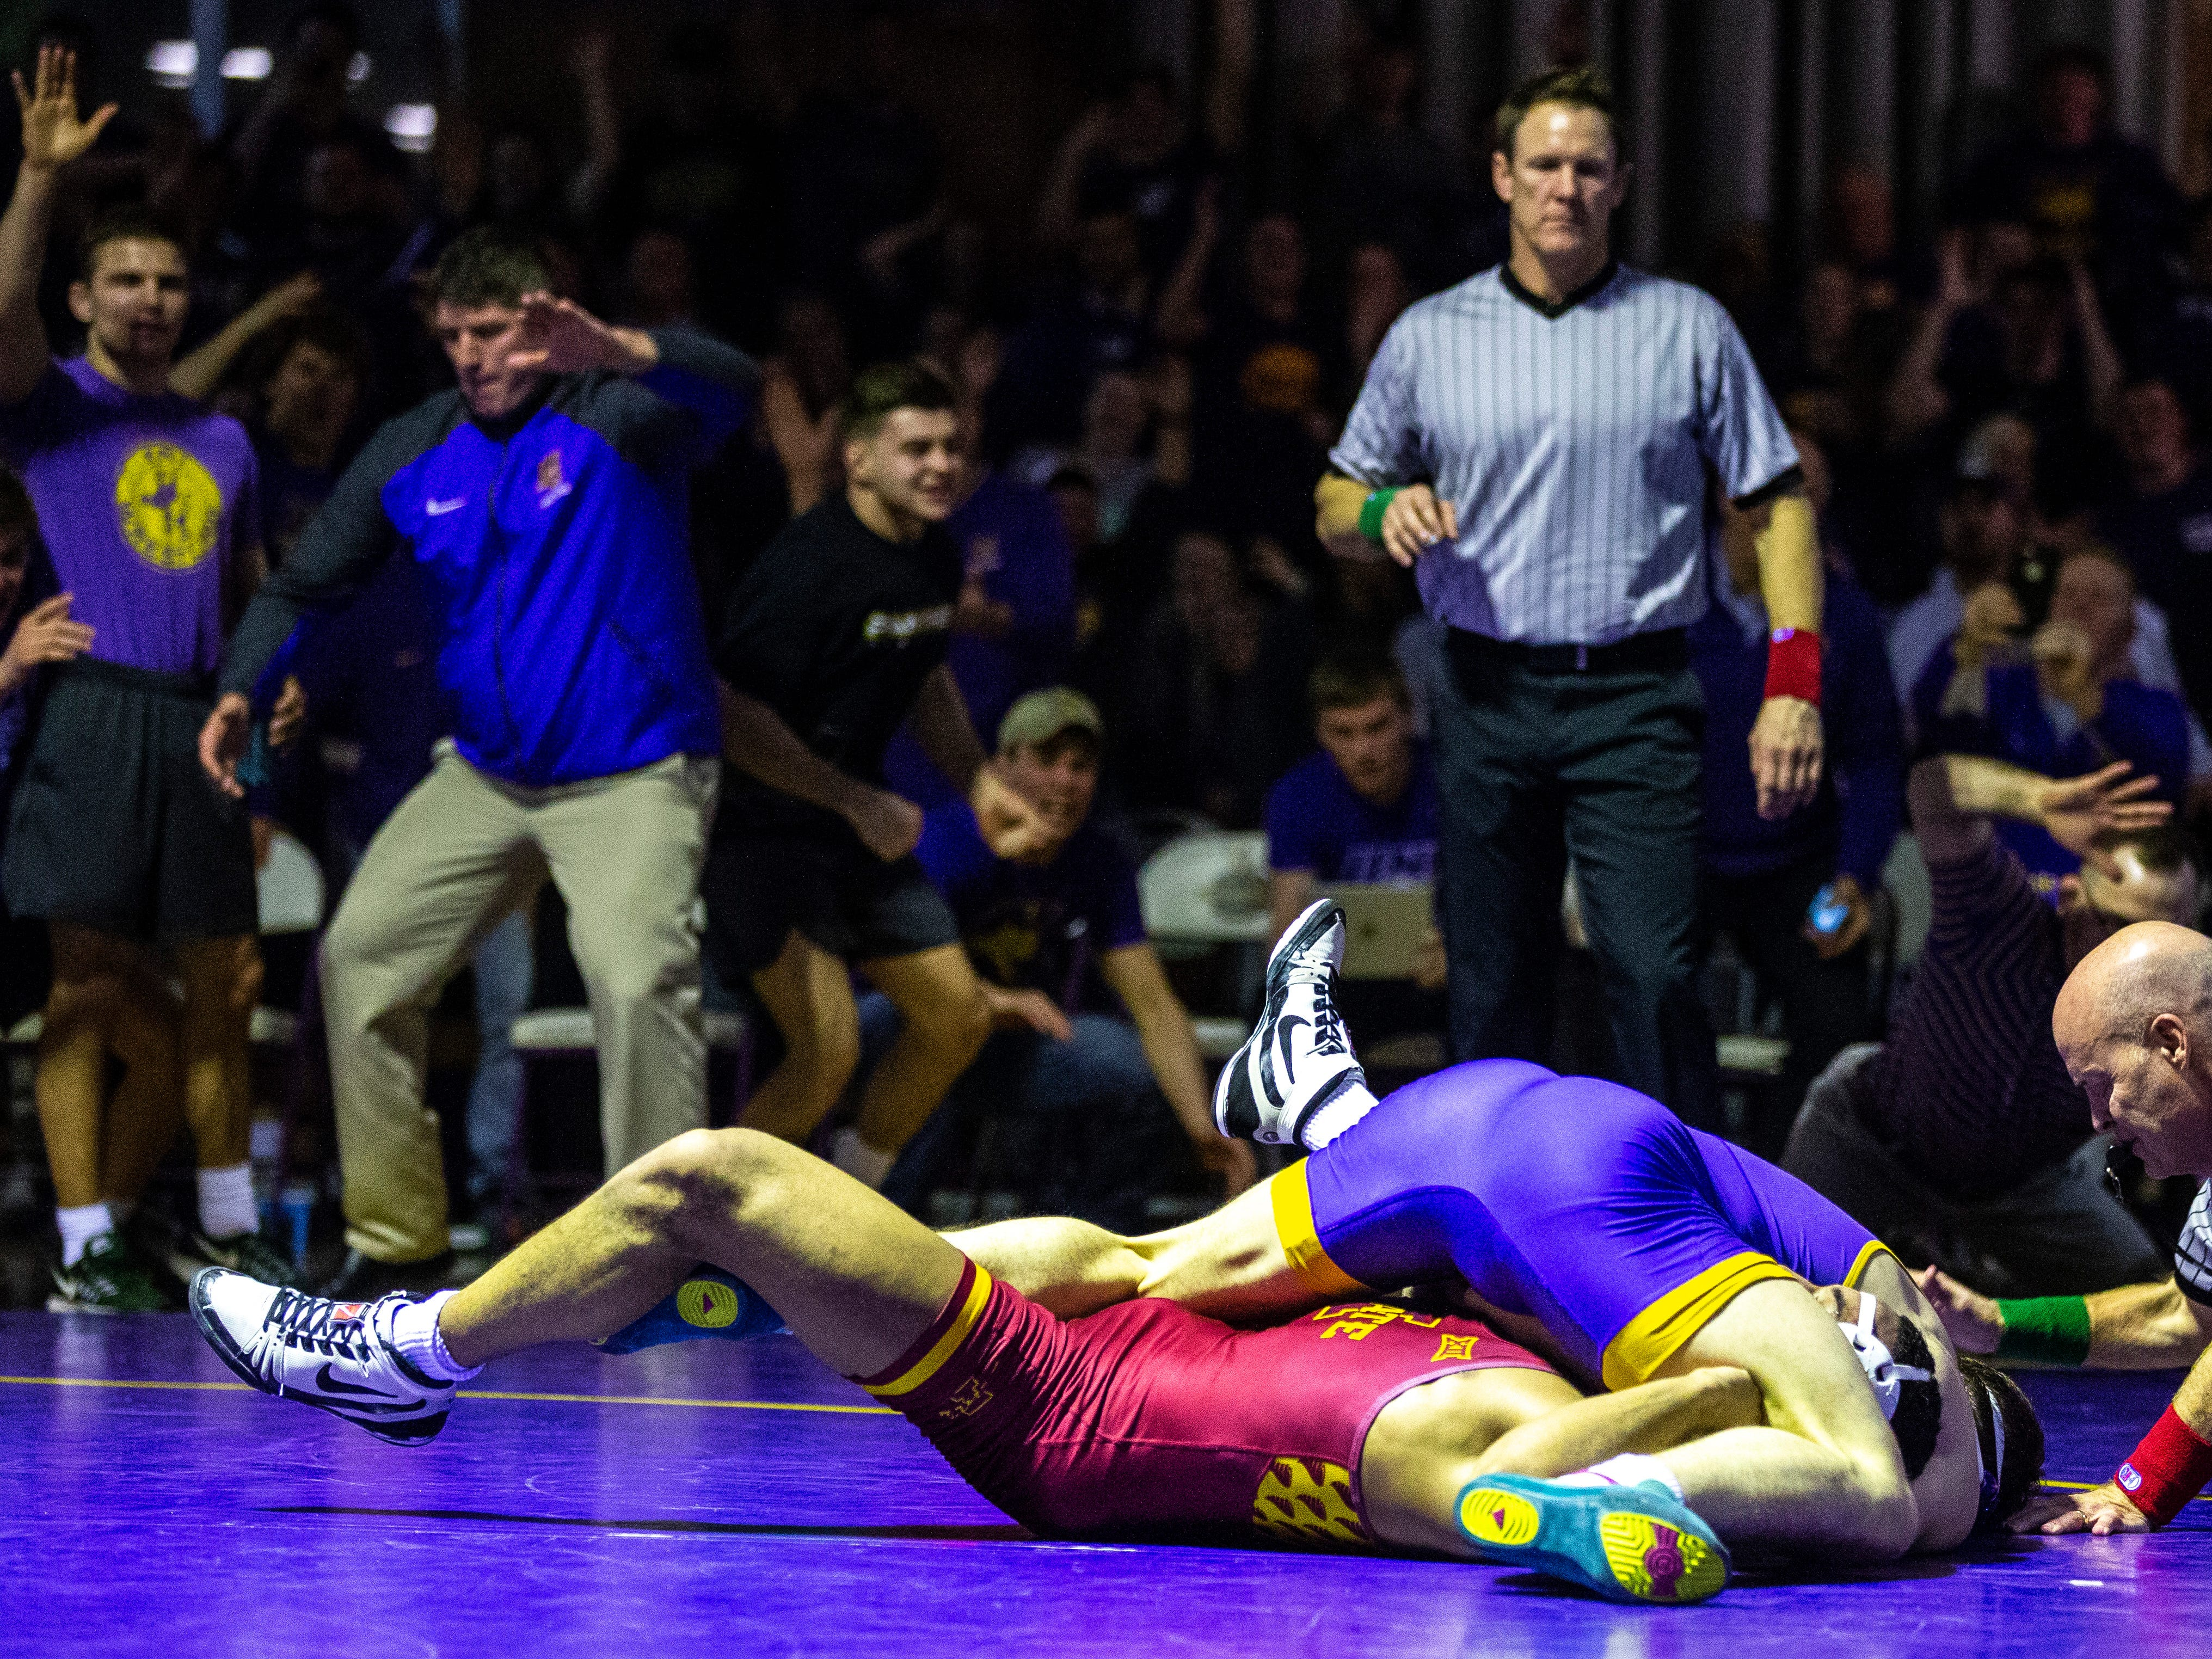 Northern Iowa's Taylor Lujan pins Iowa State's Marcus Coleman wrestles at 174 during a NCAA Big 12 wrestling dual on Thursday, Feb. 21, 2019 at the West Gymnasium in Cedar Falls, Iowa.